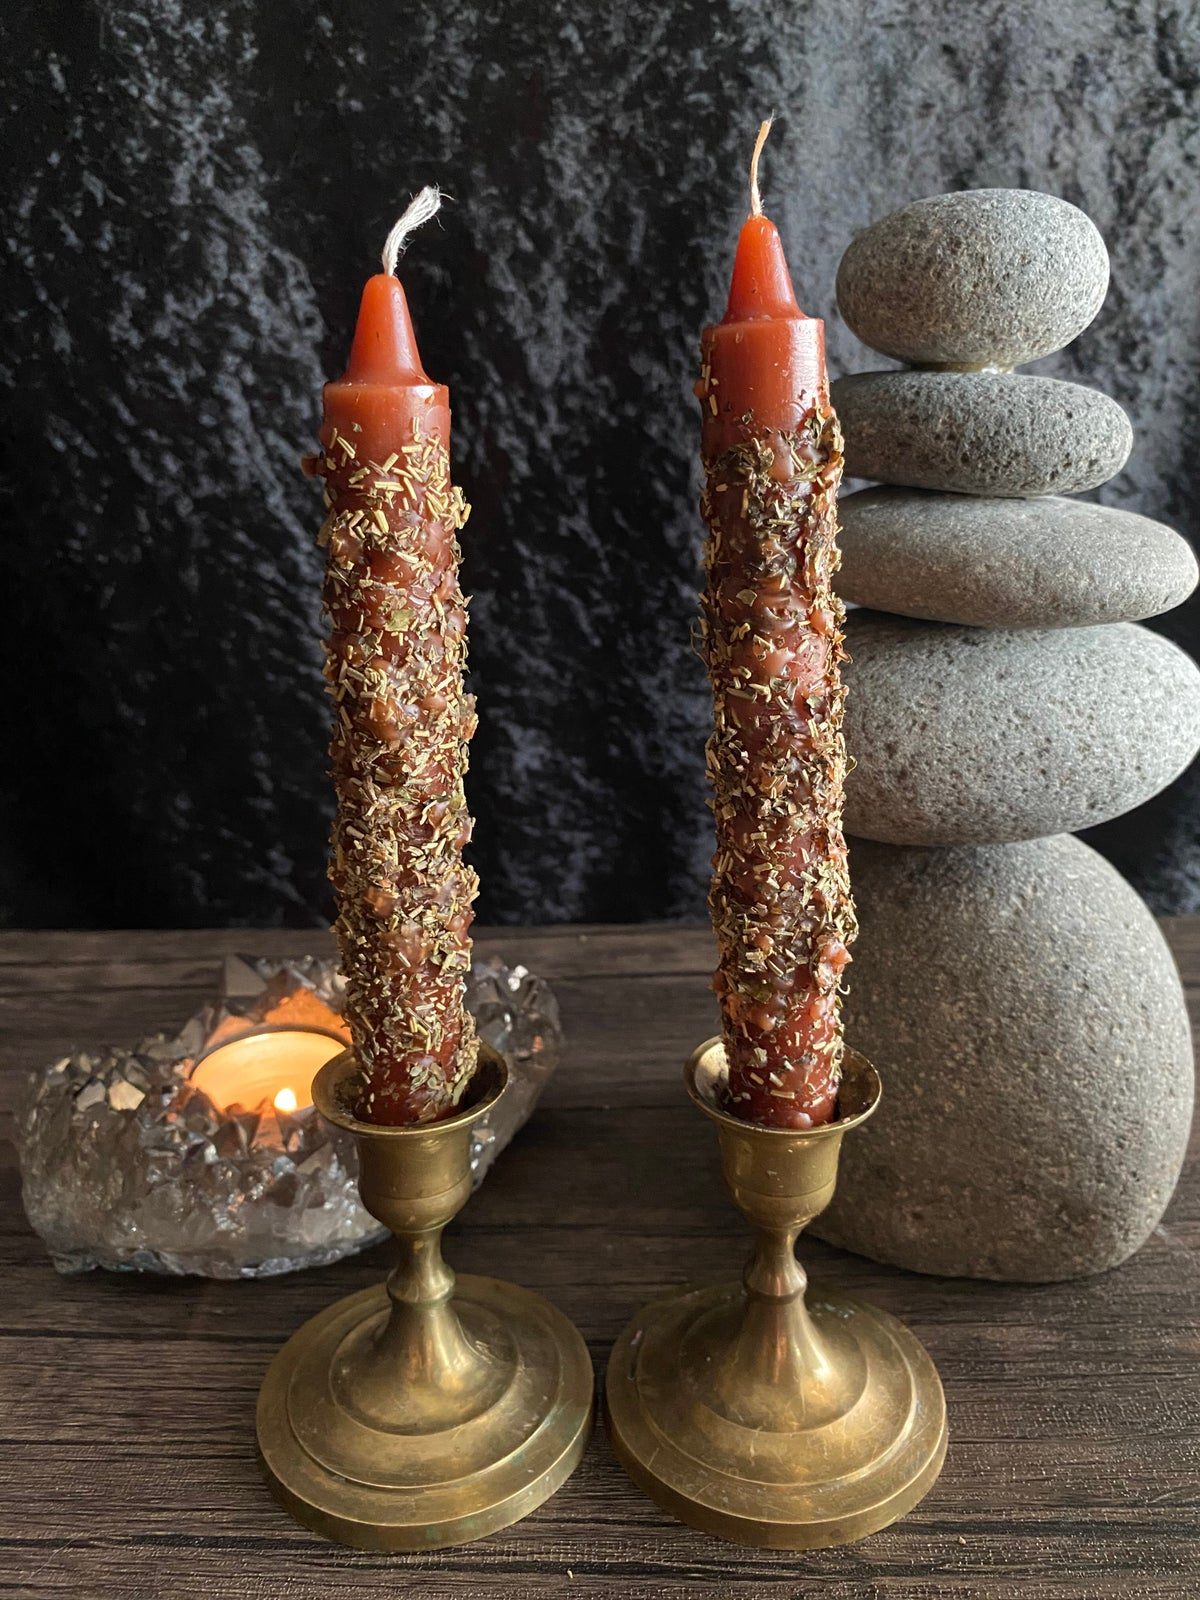 CONFIDENCE WITCHY SPELL CANDLES